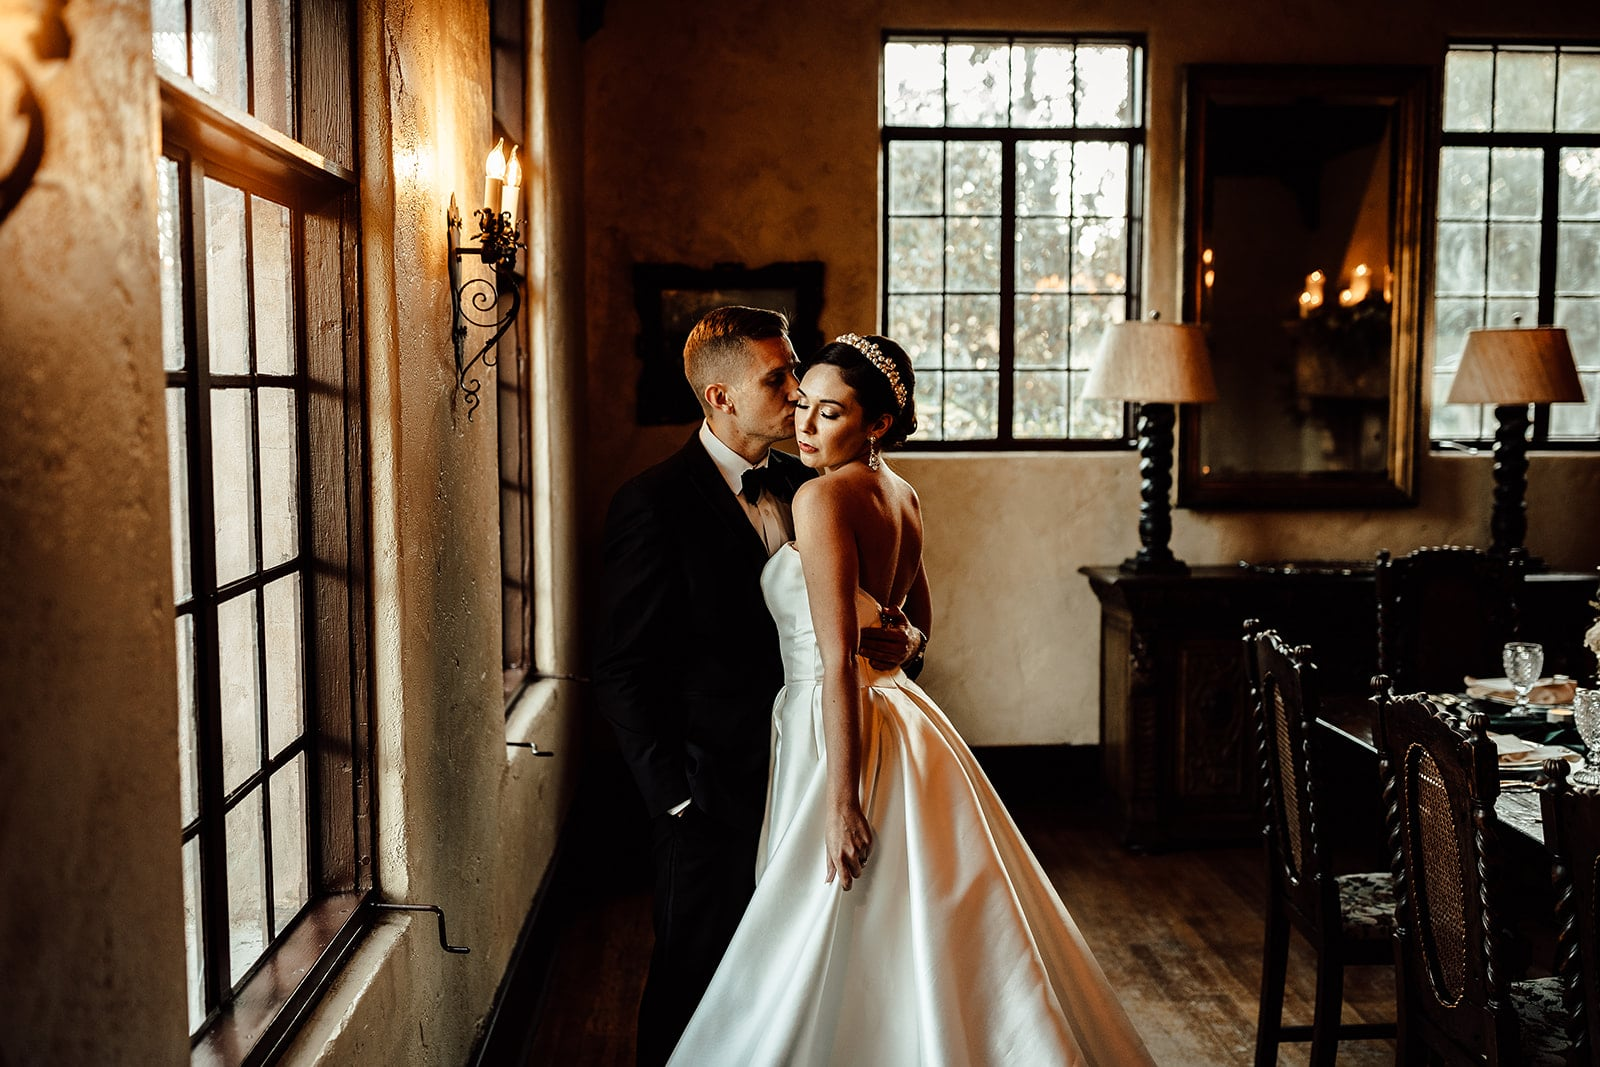 couple on wedding day in historic looking room next to window as groom kisses brides cheek and she looks down at the floor